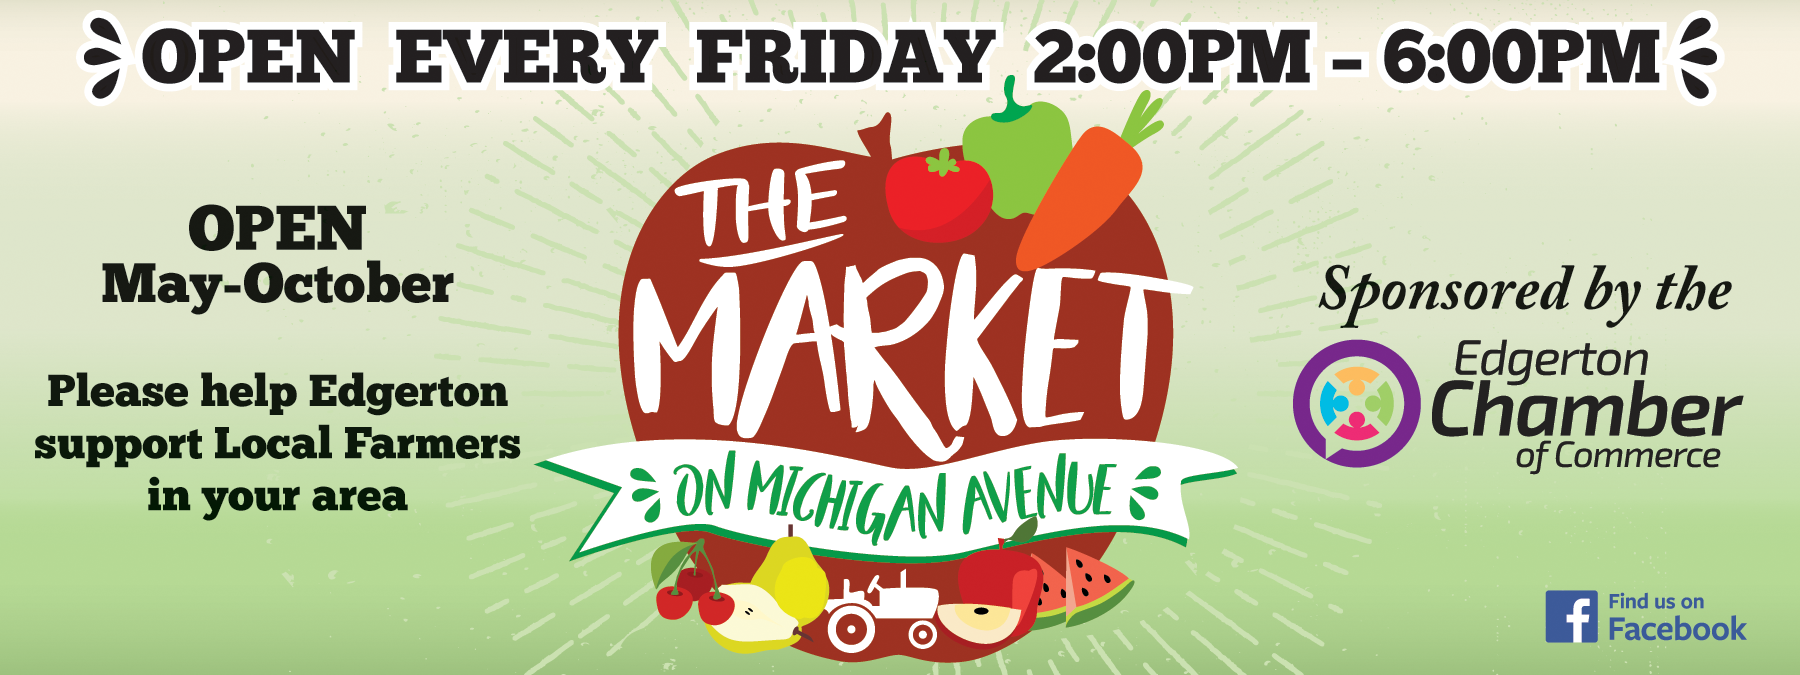 The Market On Michigan Avenue | Edgerton Chamber of Commerce